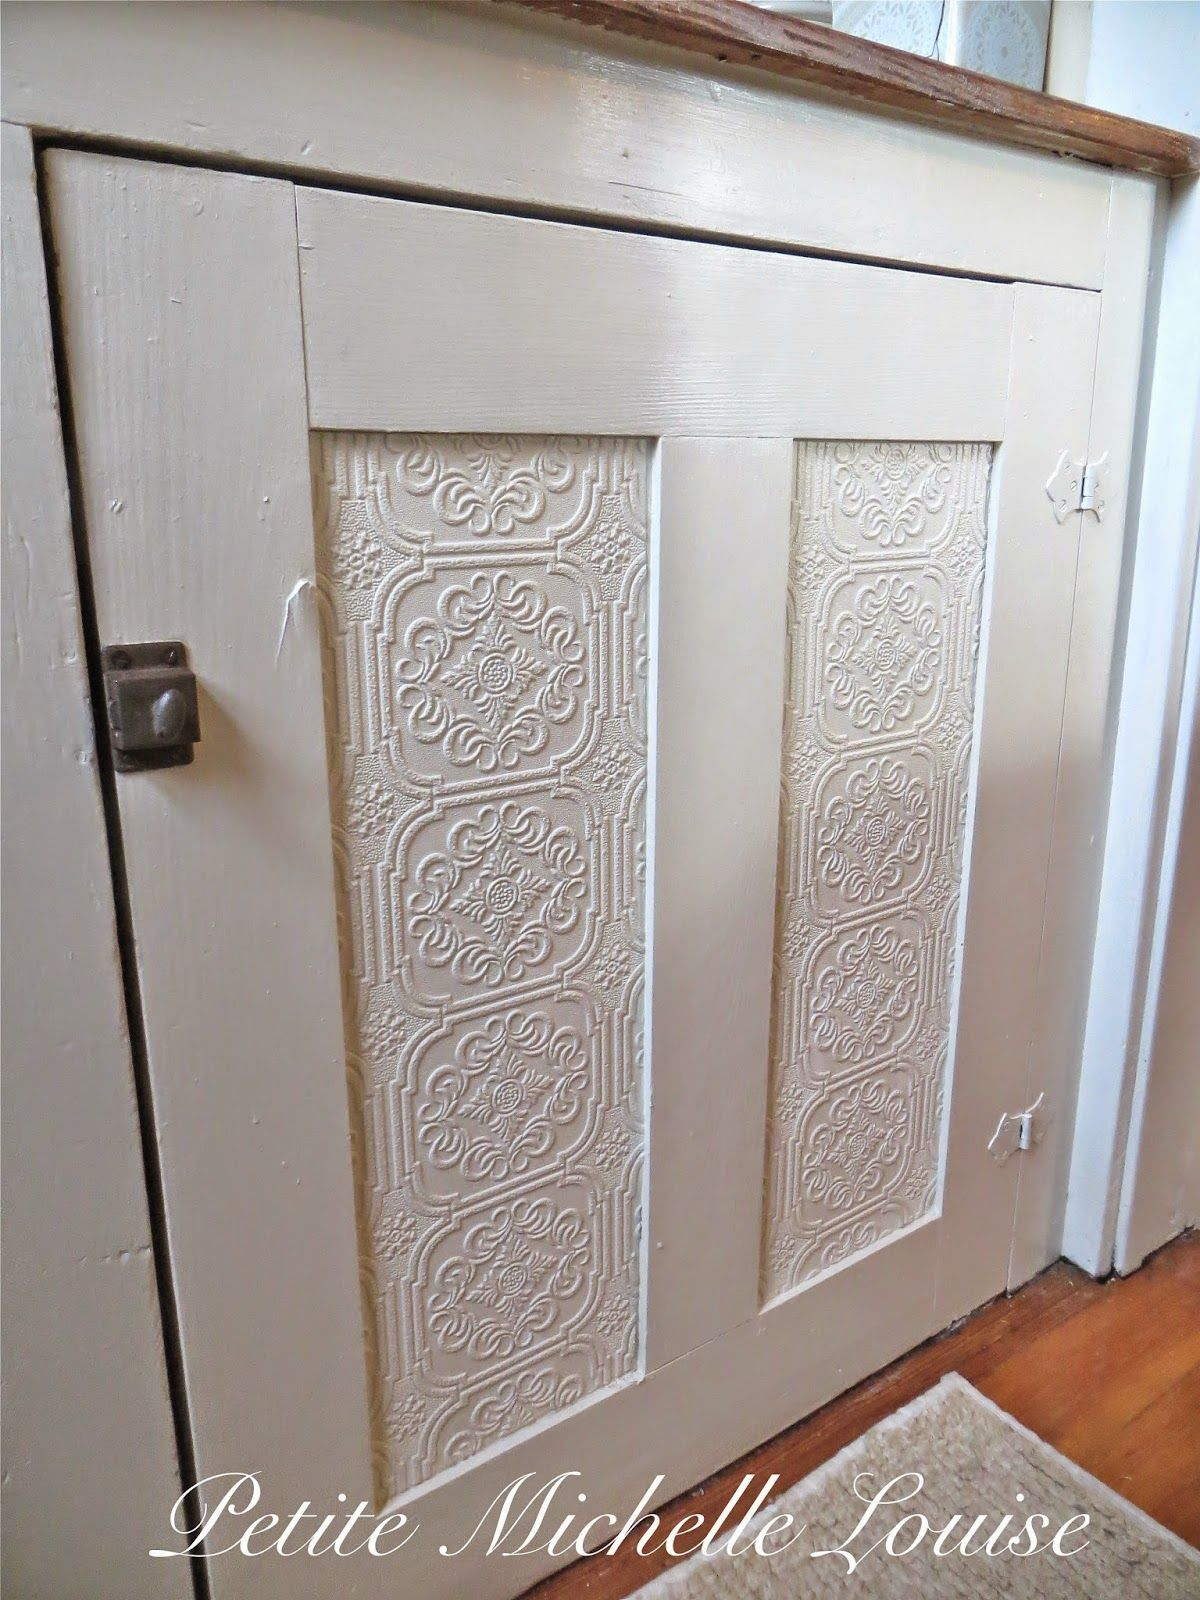 I was ready to give my kitchen pantry doors a fresh coat of paint